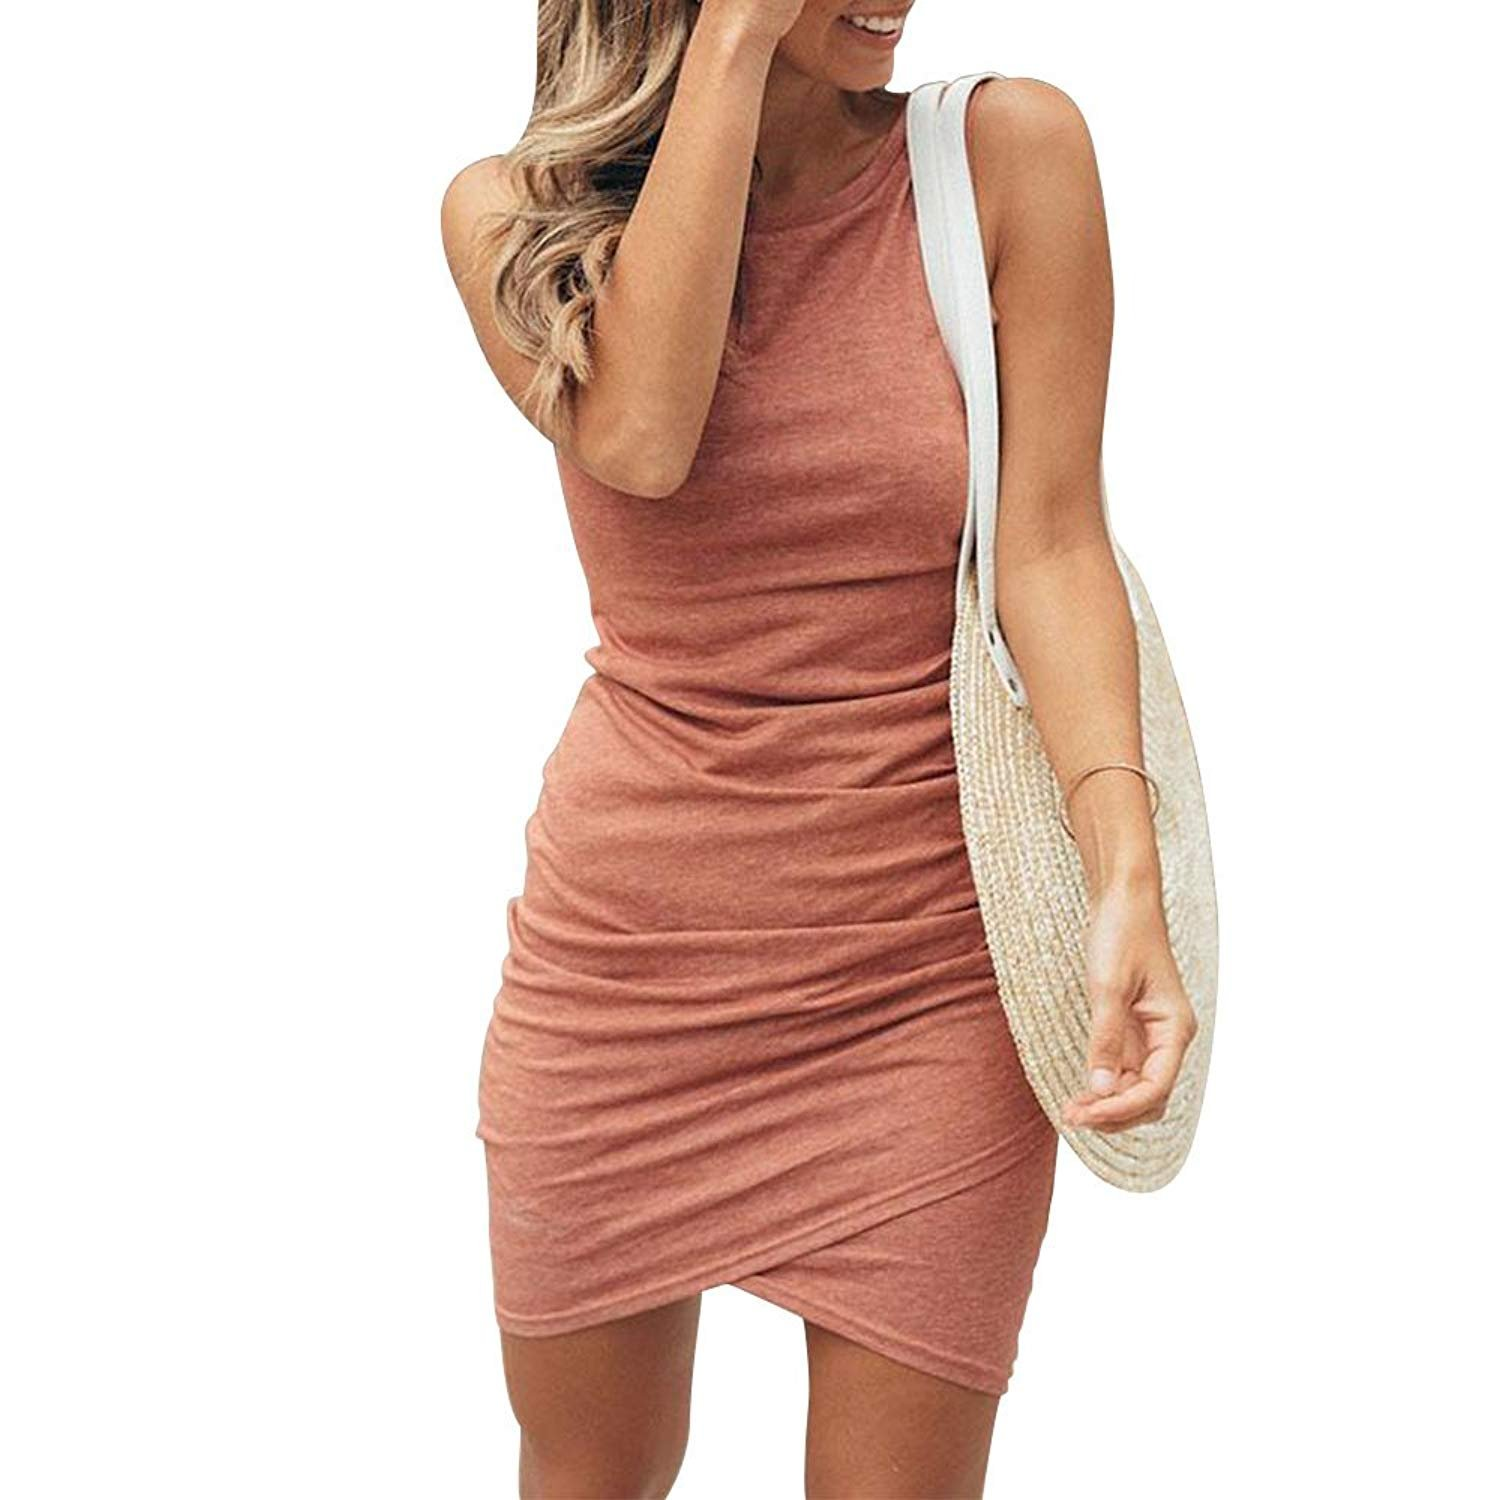 Summer Ruched Casual Bodycon Stretch Short Sleeve T Shirt Dresses for Women Pink1 S